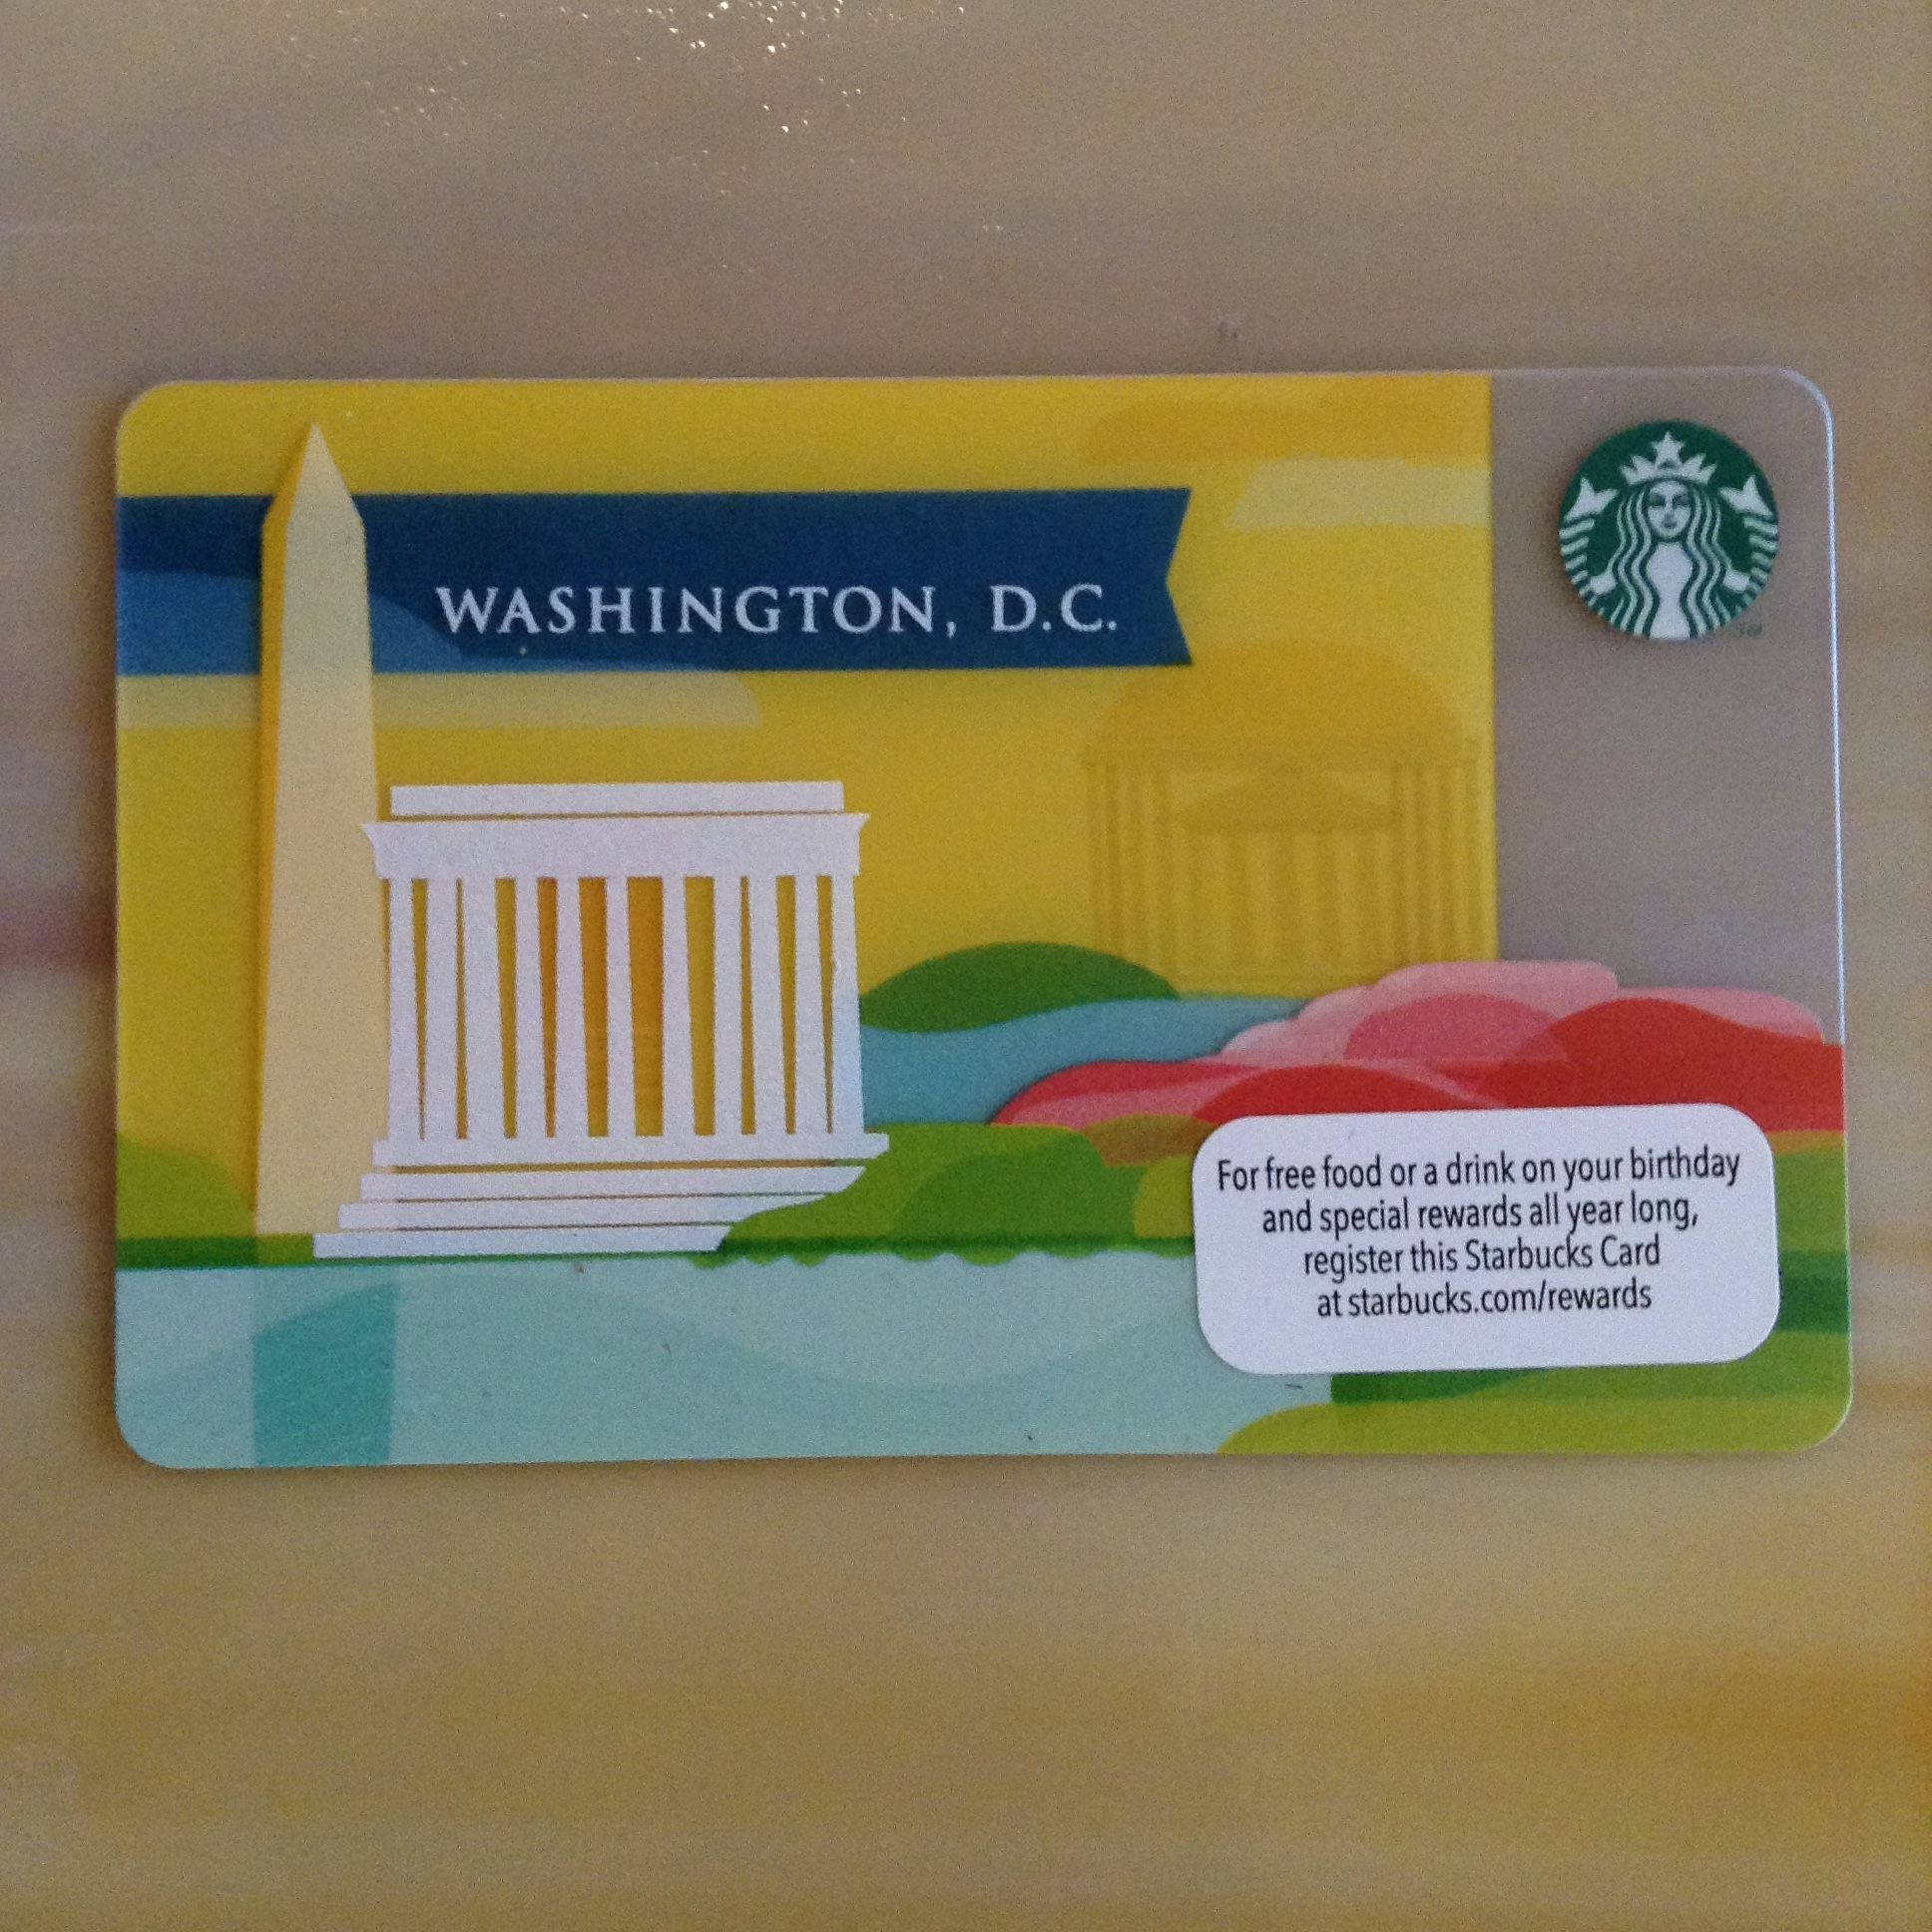 This card was available in select washington dc stores